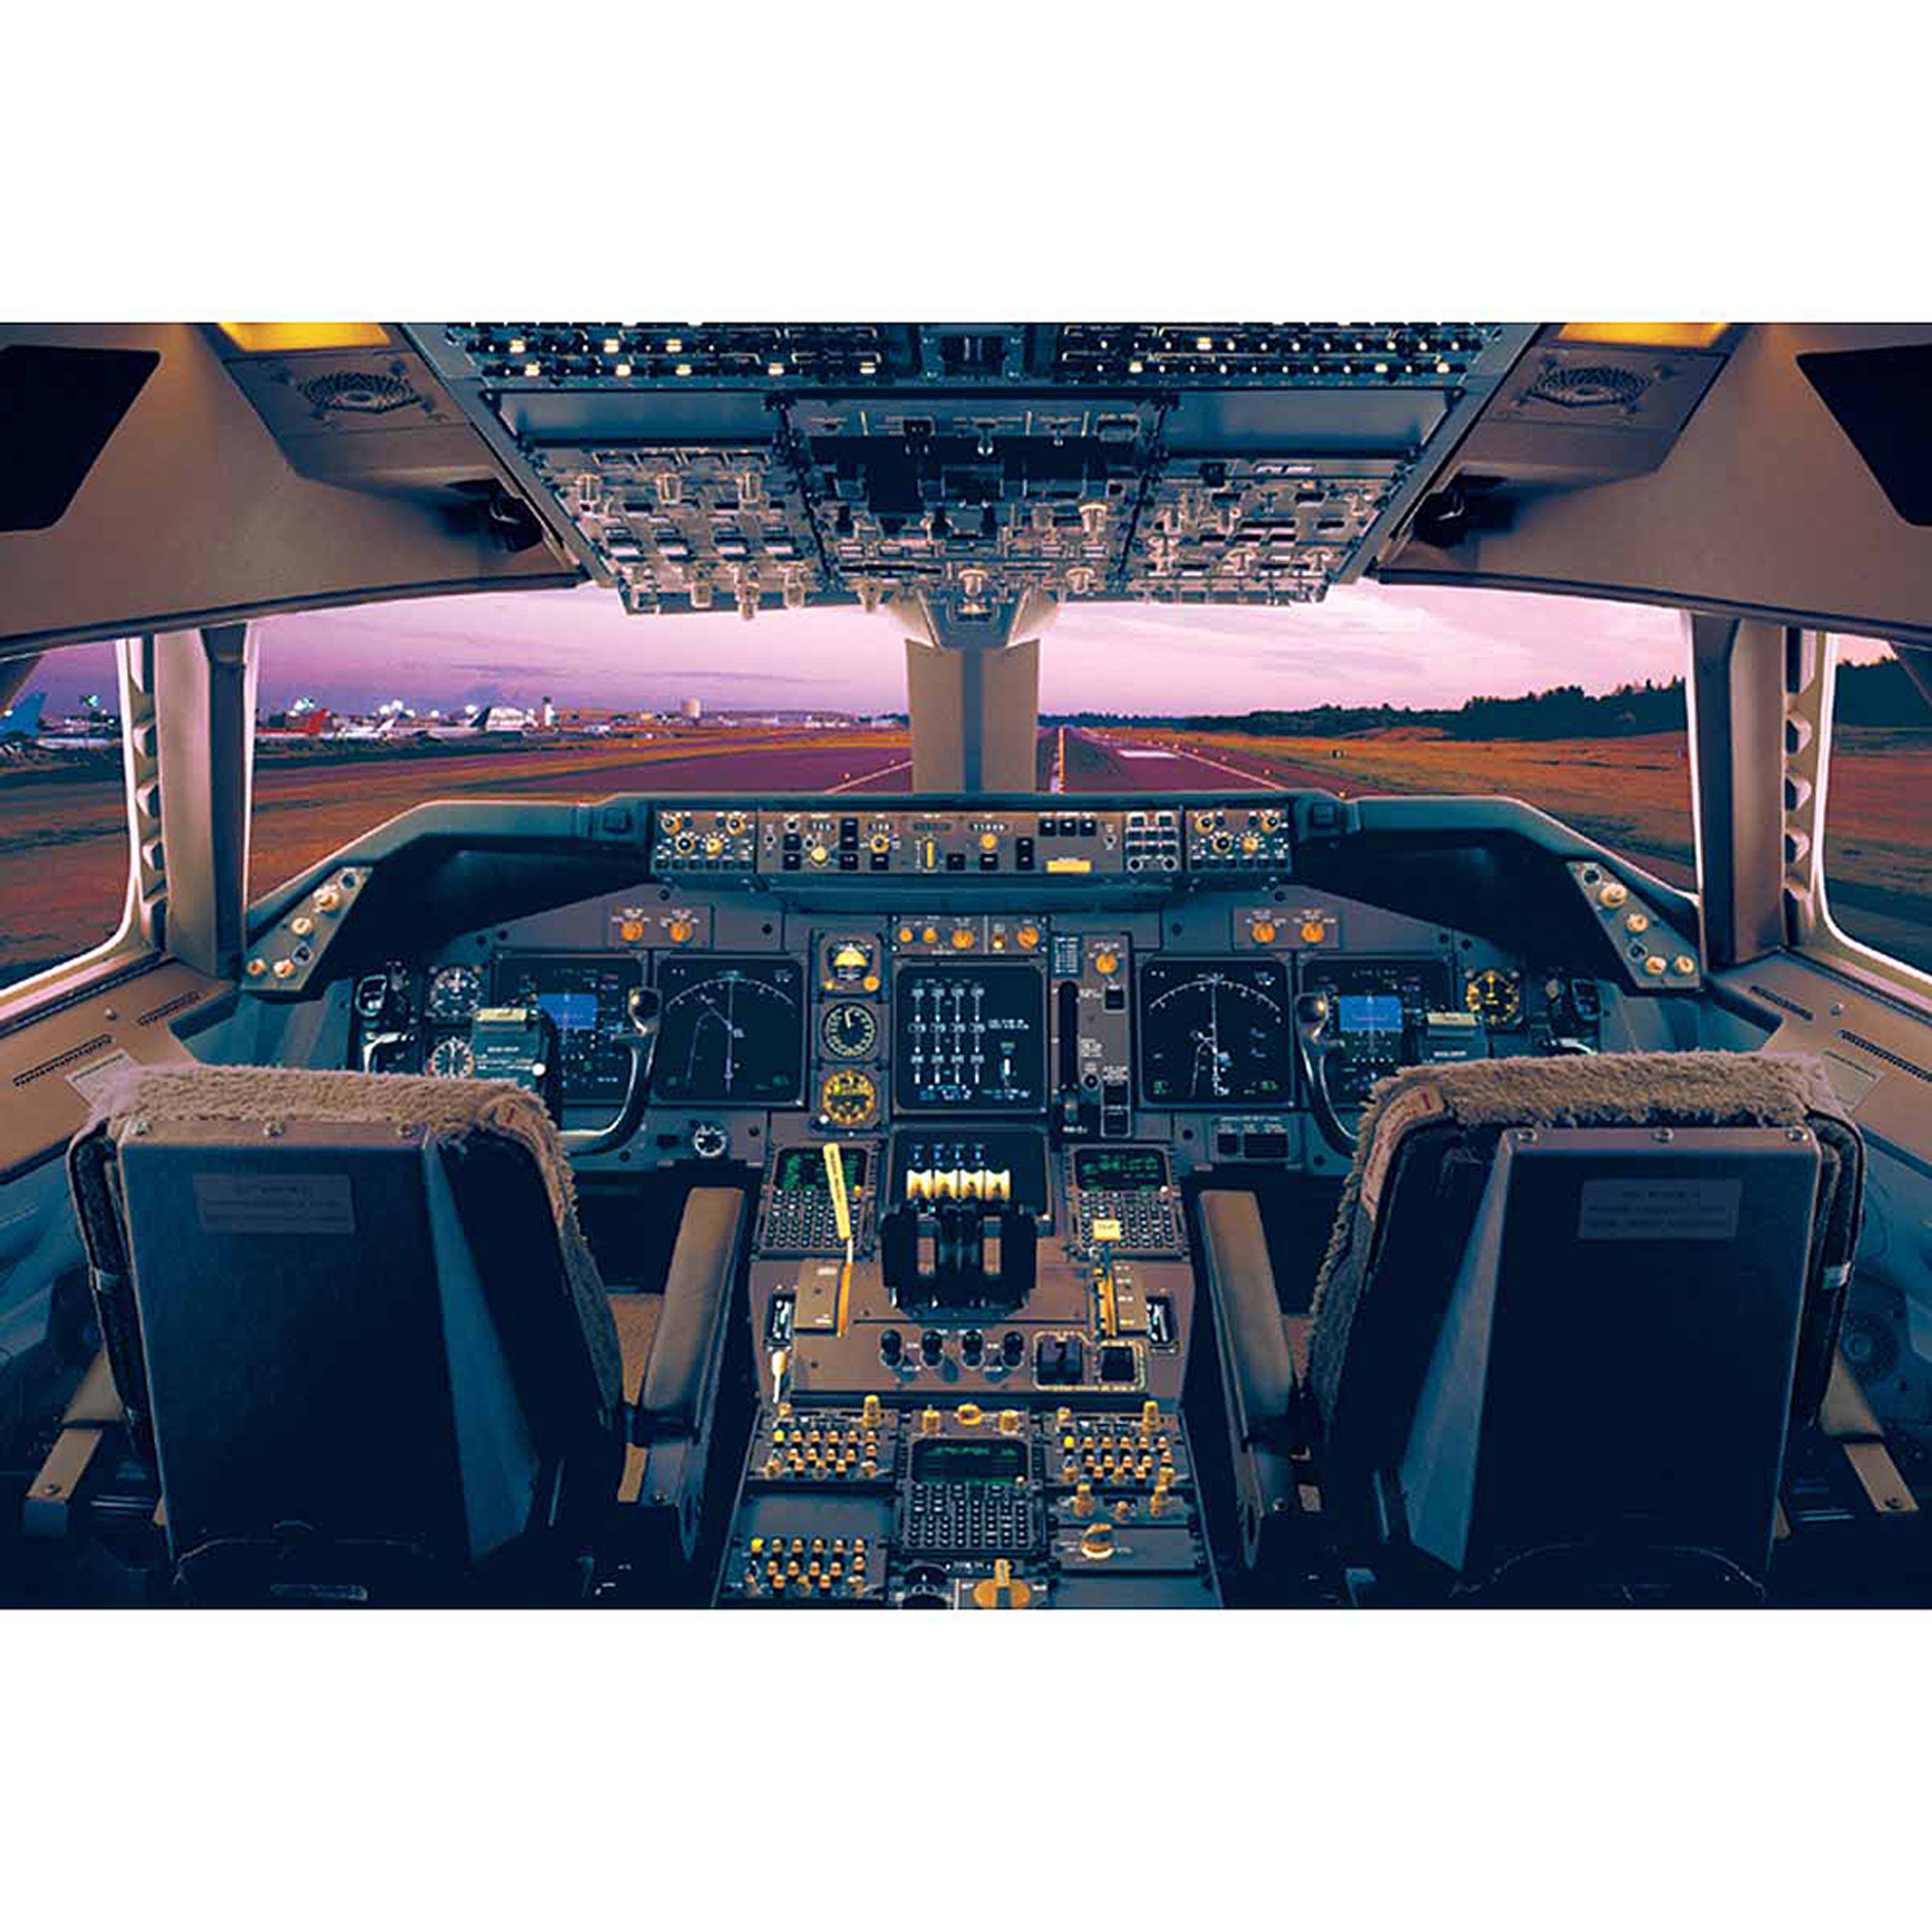 Airplane-Boeing747-400 Deck Photography Art